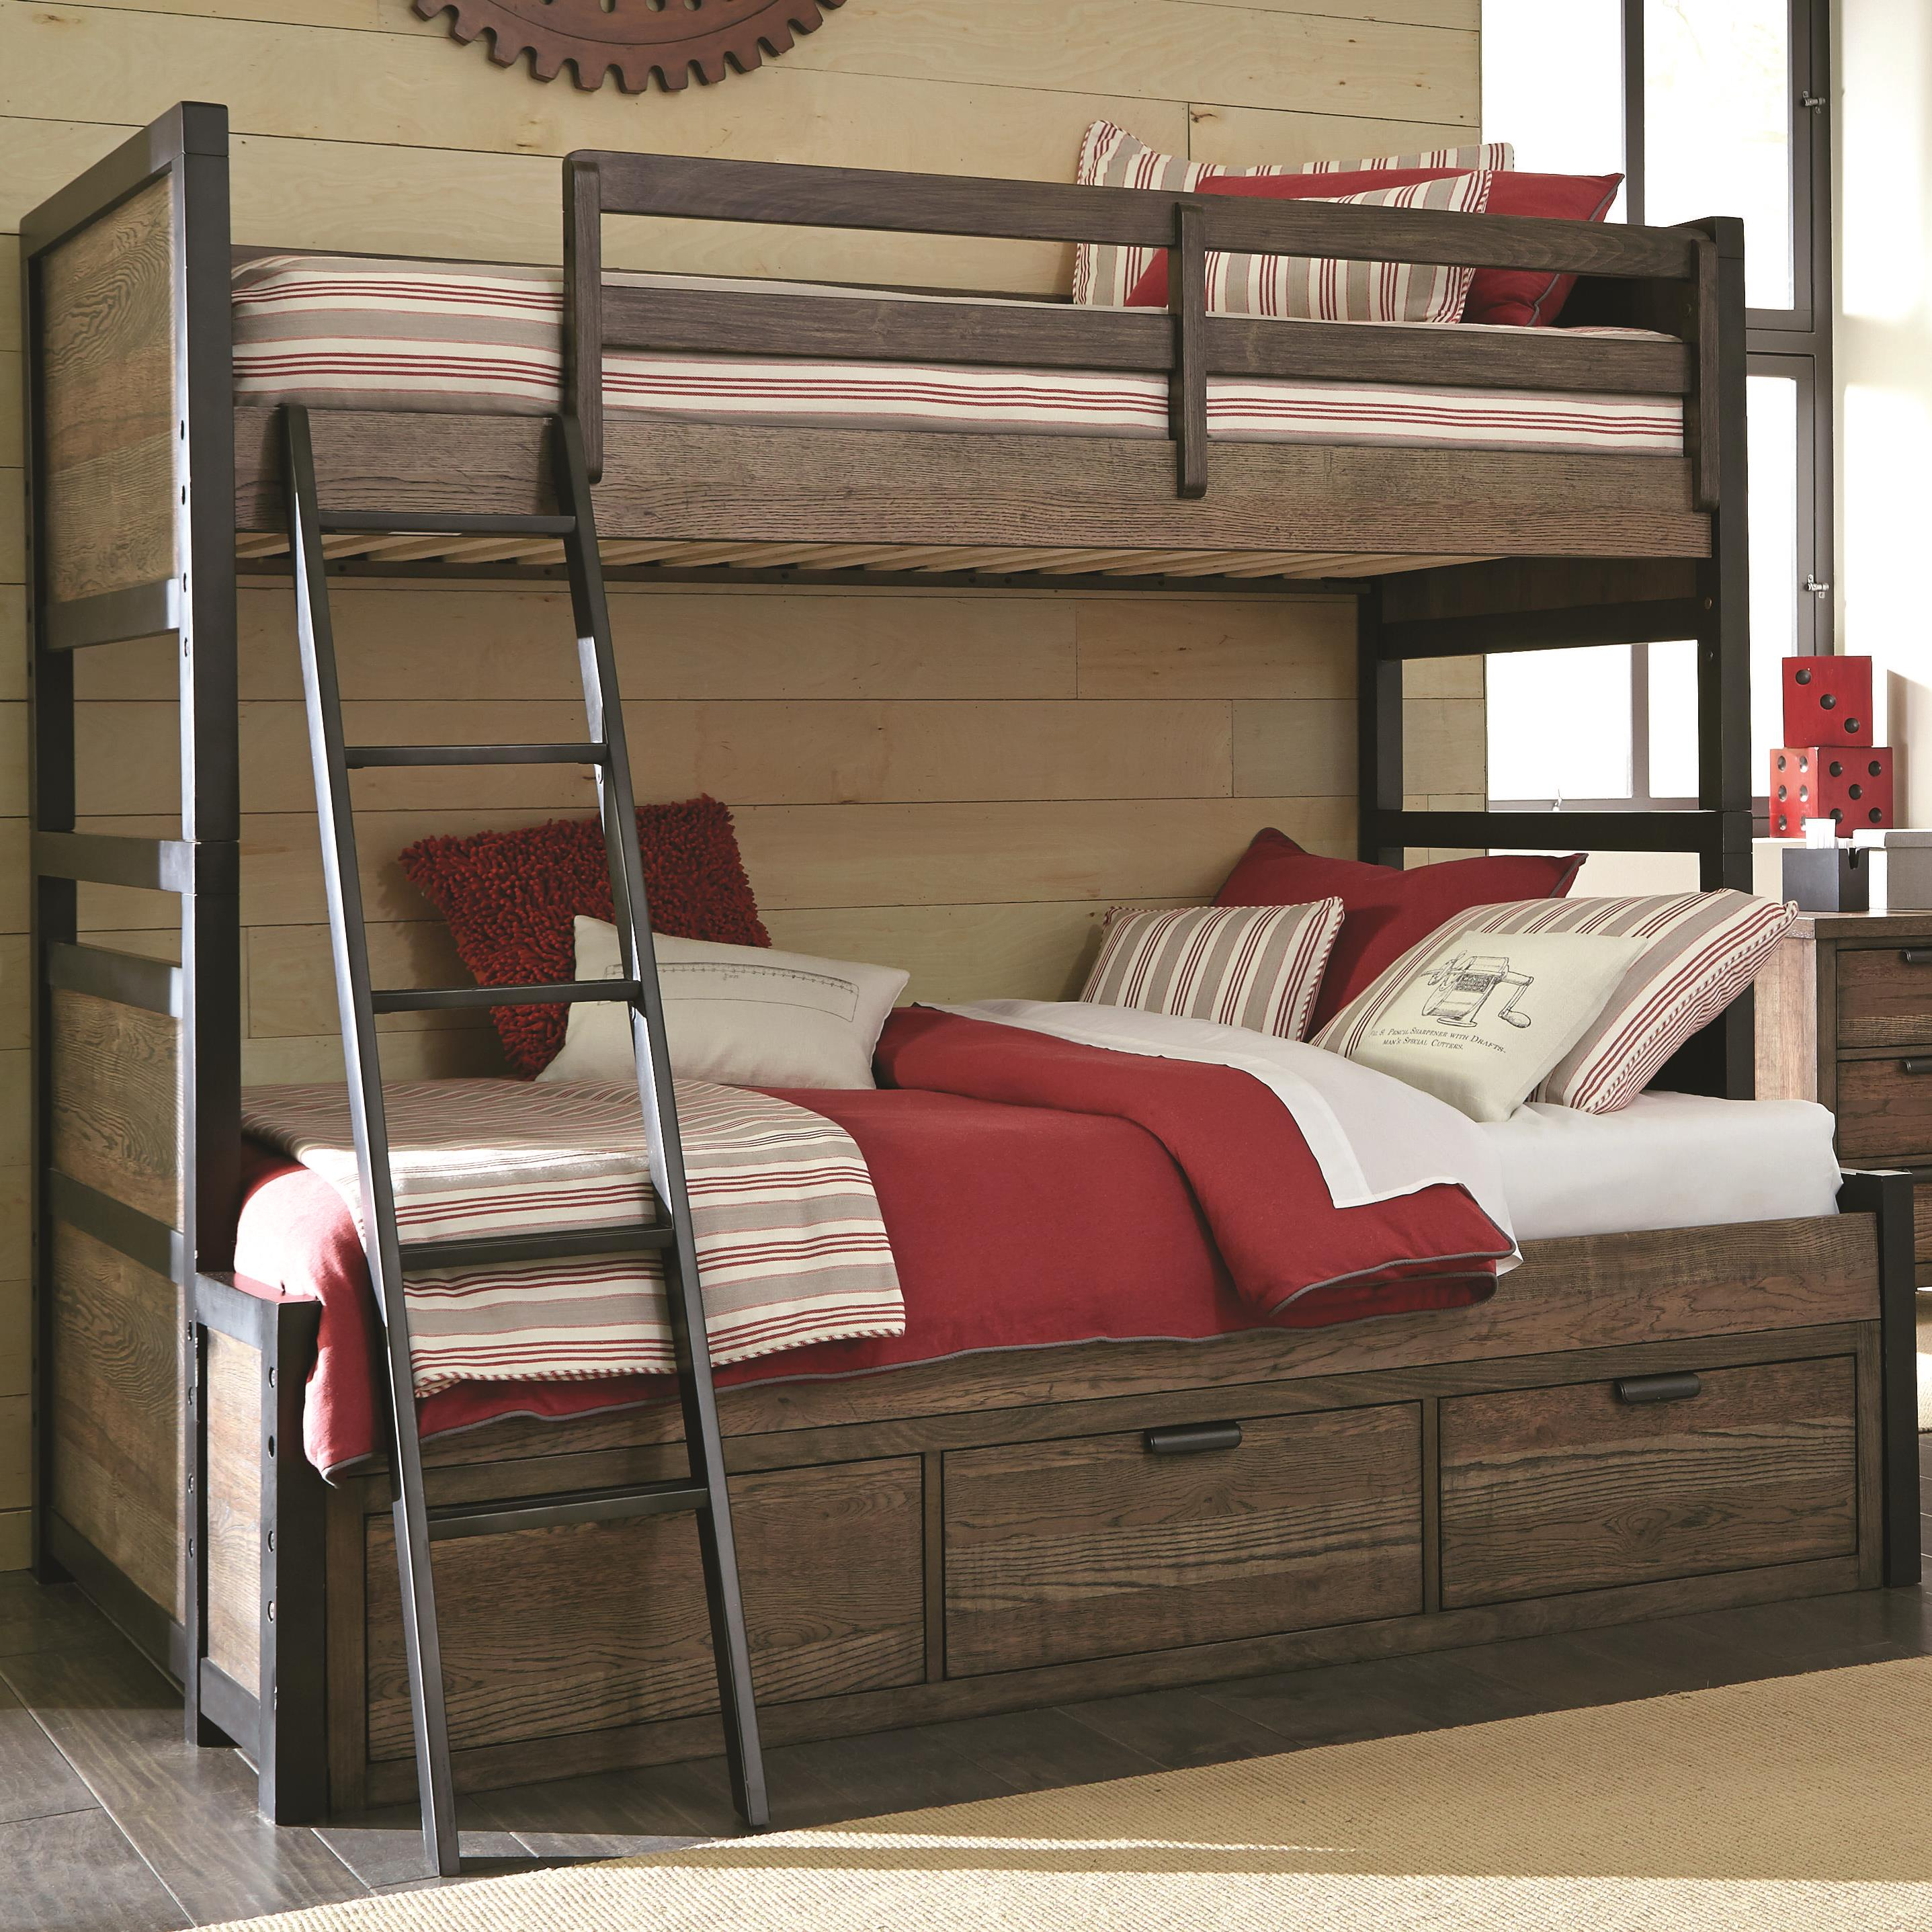 over wood shipping product bed full walnut dark furniture solid today garden classic keko finish overstock free twin of home america bunk gracewood curtine beds hollow